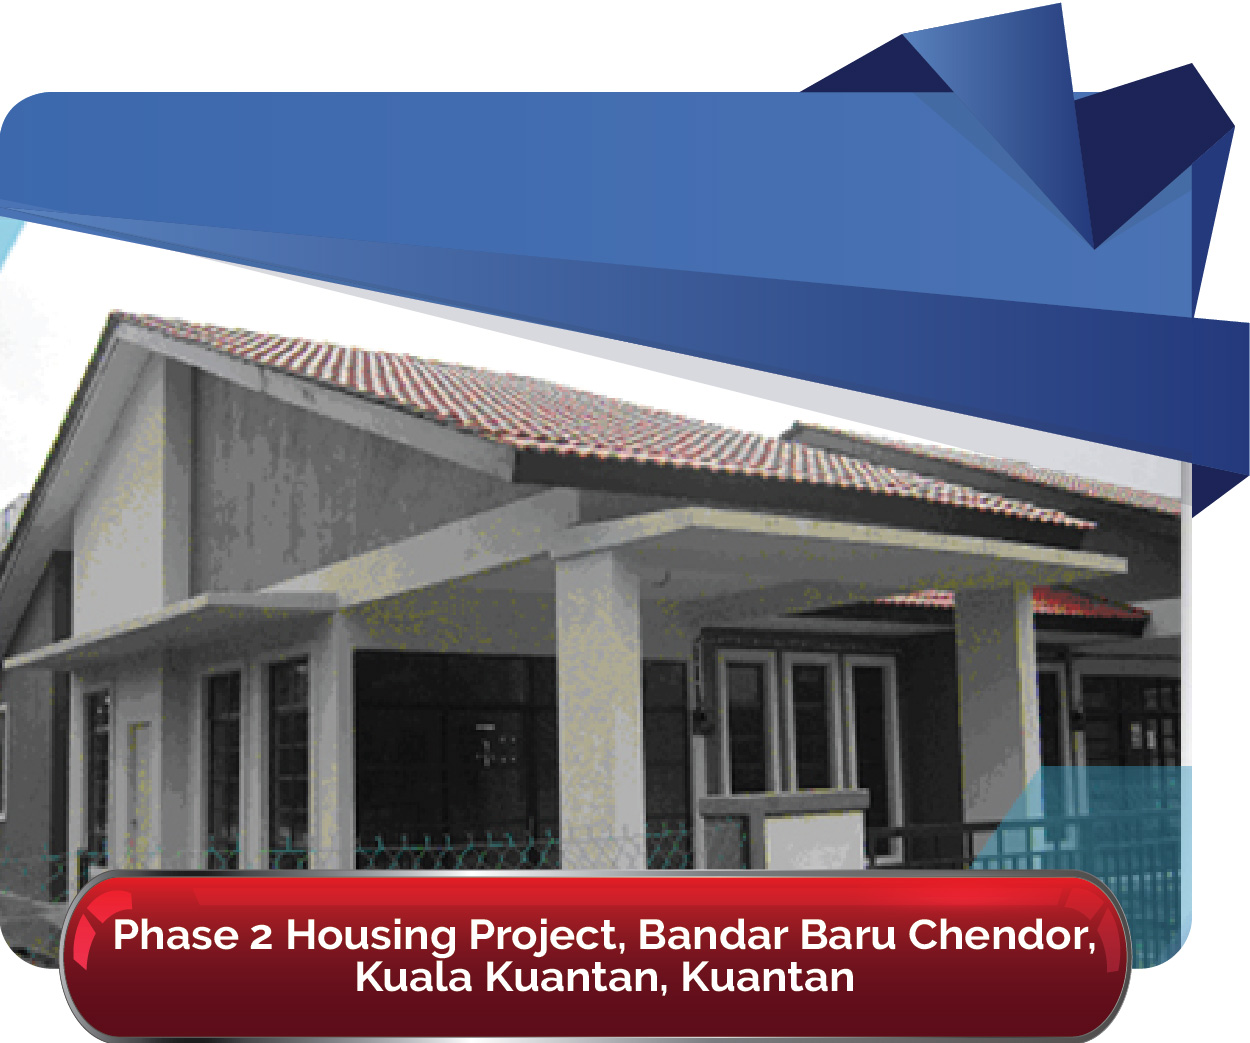 Phase 2 Housing Project Bandar Baru Chendor 01